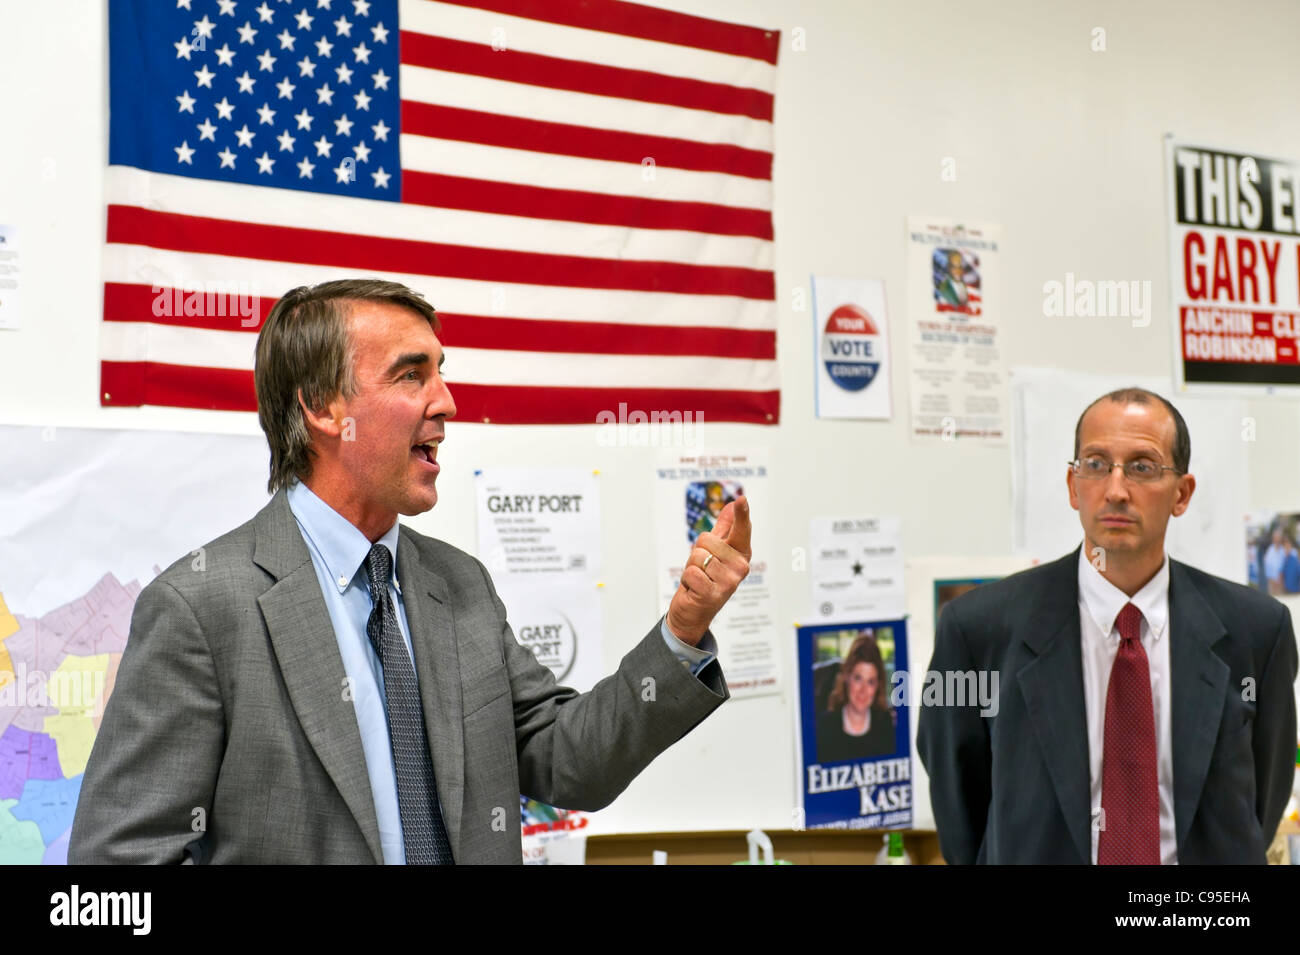 Election Night, re-elected Nassau County Legislator Joseph Scannell, at left, and Gary Port, Democrats, 2011-11 - Stock Image